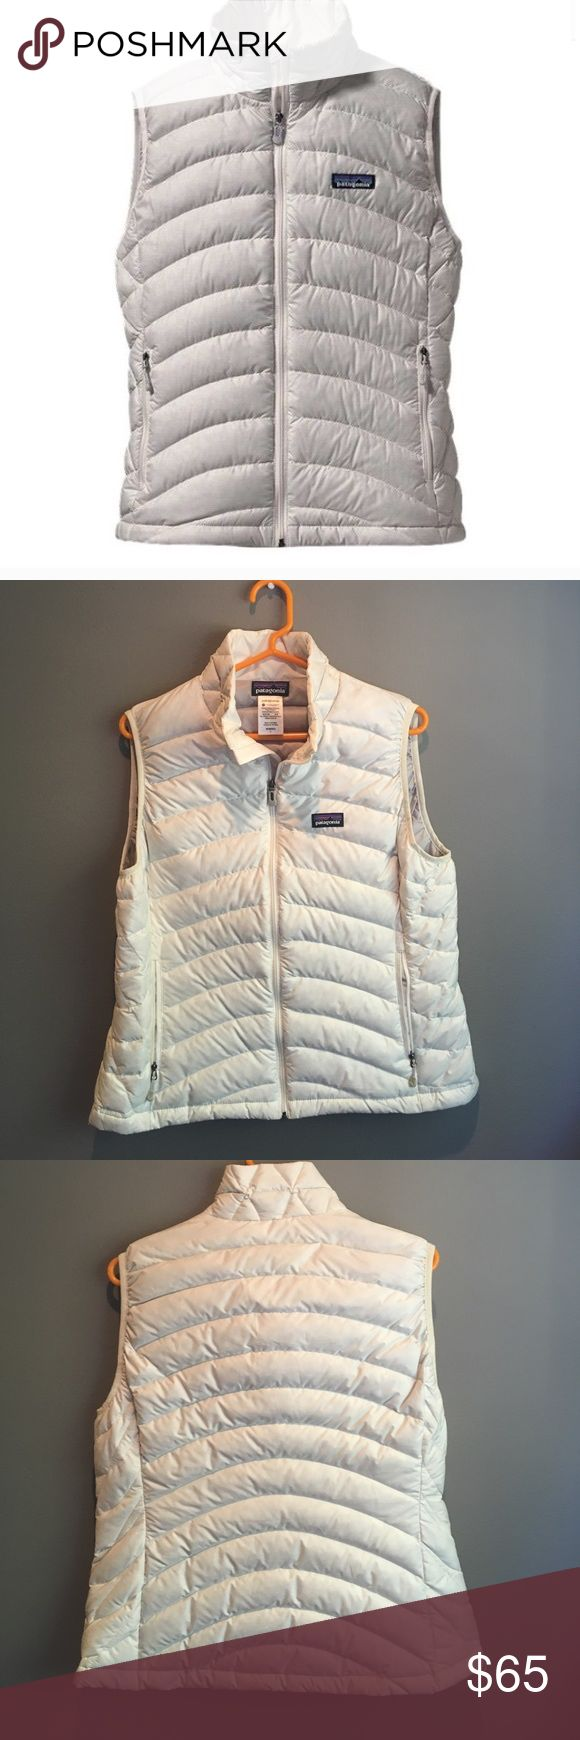 Down Vest Down vest! Seriously in great new condition. Worn maybe 5 times? Made of goose feathers-extremely warm! Bought for $100 at Patagonia shop. Patagonia Jackets & Coats Puffers